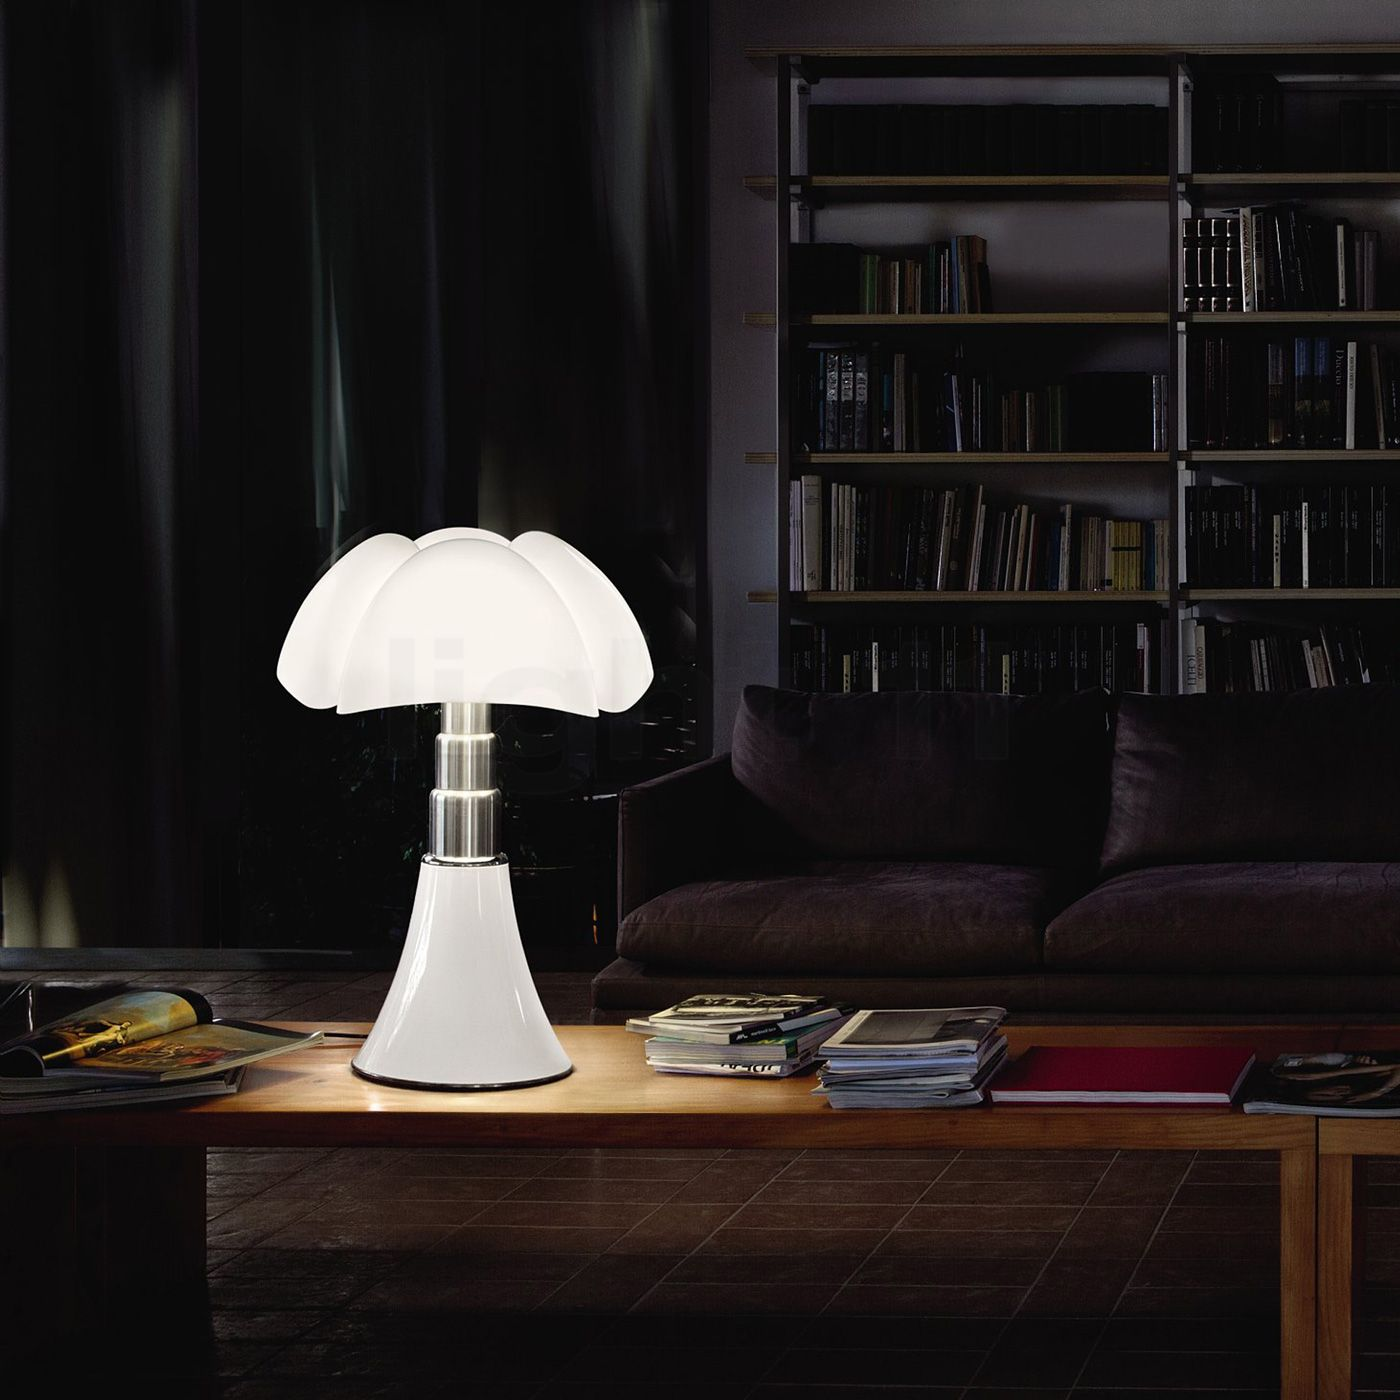 Martinelli_Luce_Pipistrello_LED_Table_lamp--3001965700001_6_u Wunderschöne Led Lampen 100 Watt Dekorationen